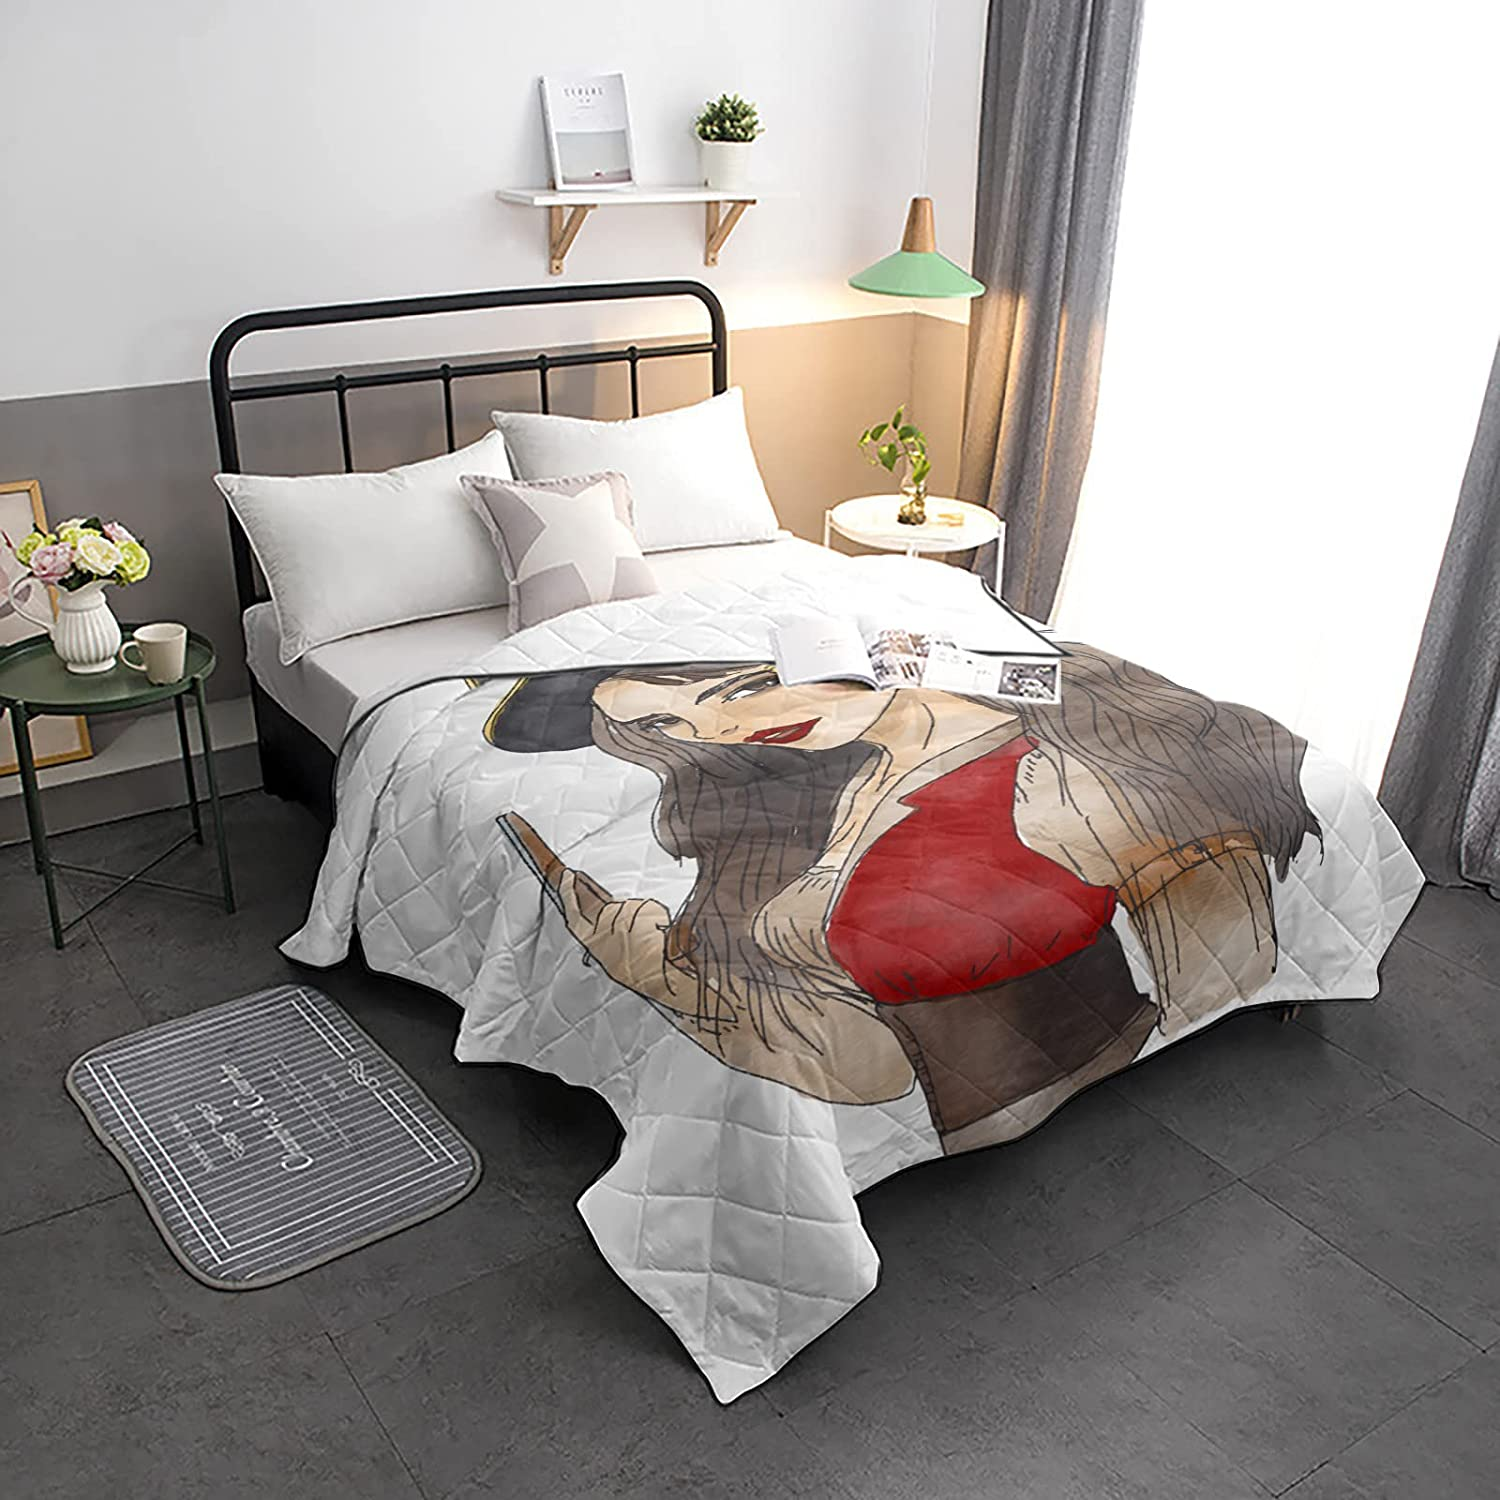 New product type HELLOWINK Bedding Comforter 2021 spring and summer new Duvet Lig Oversized Size-Soft King